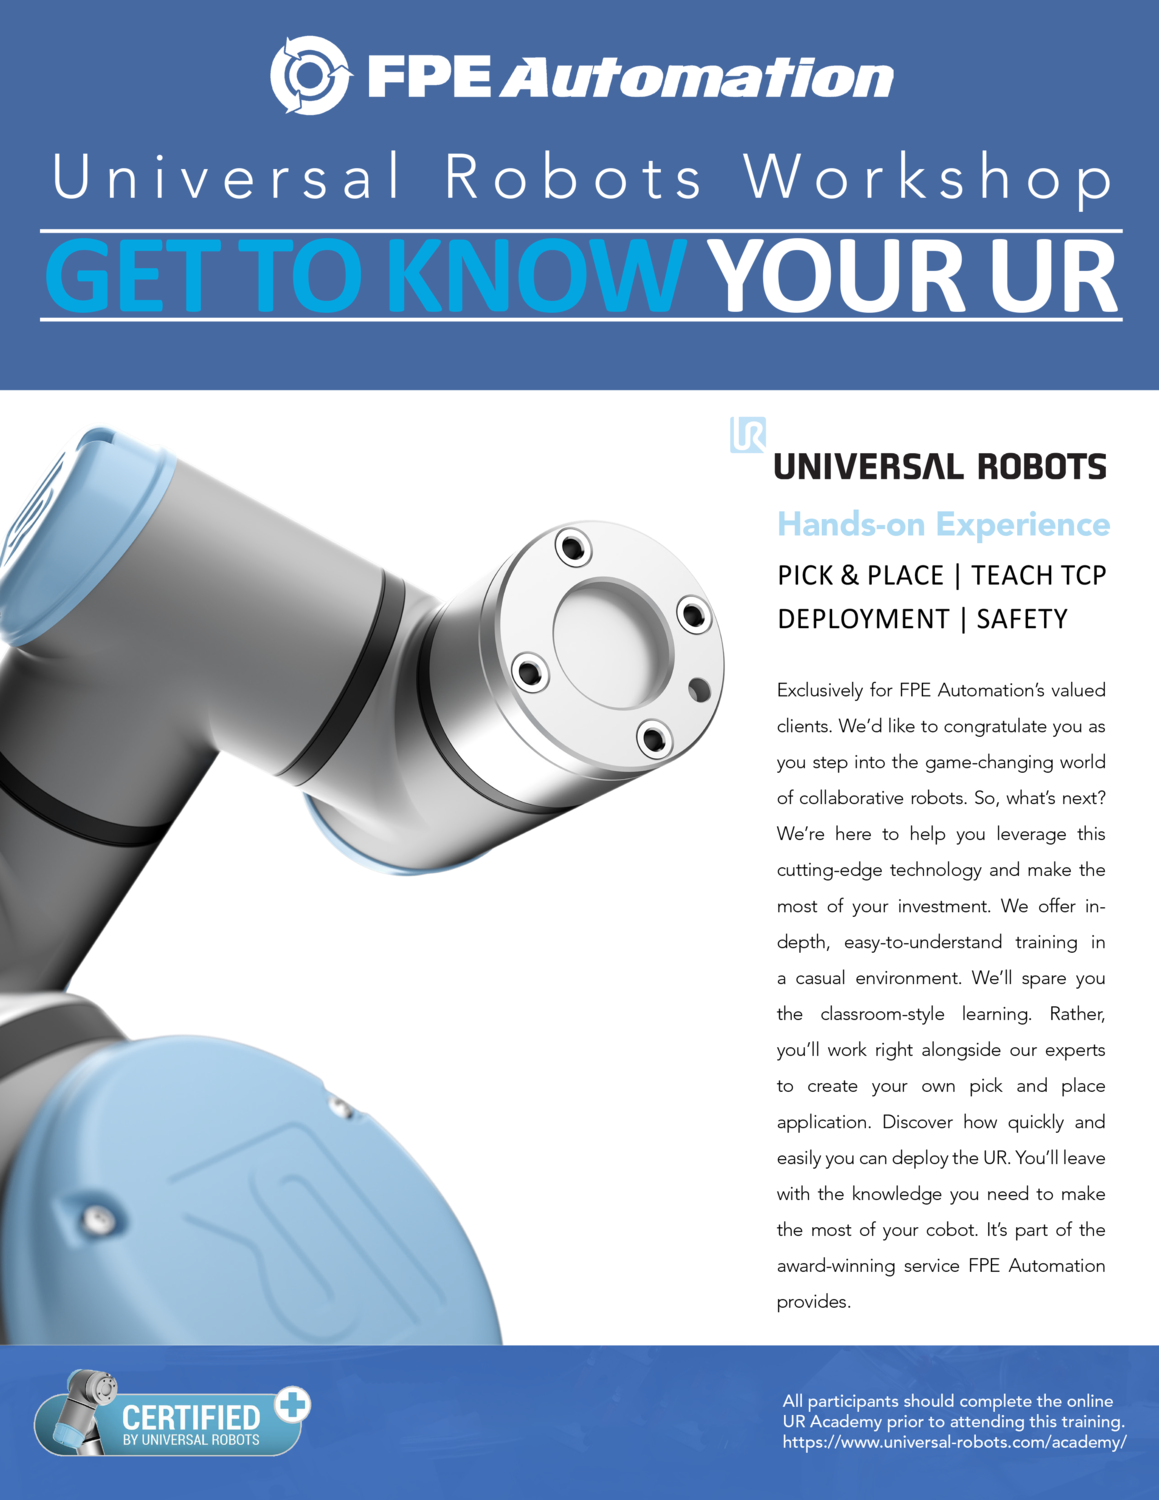 Universal Robots Workshop at FPE: Get To Know Your UR